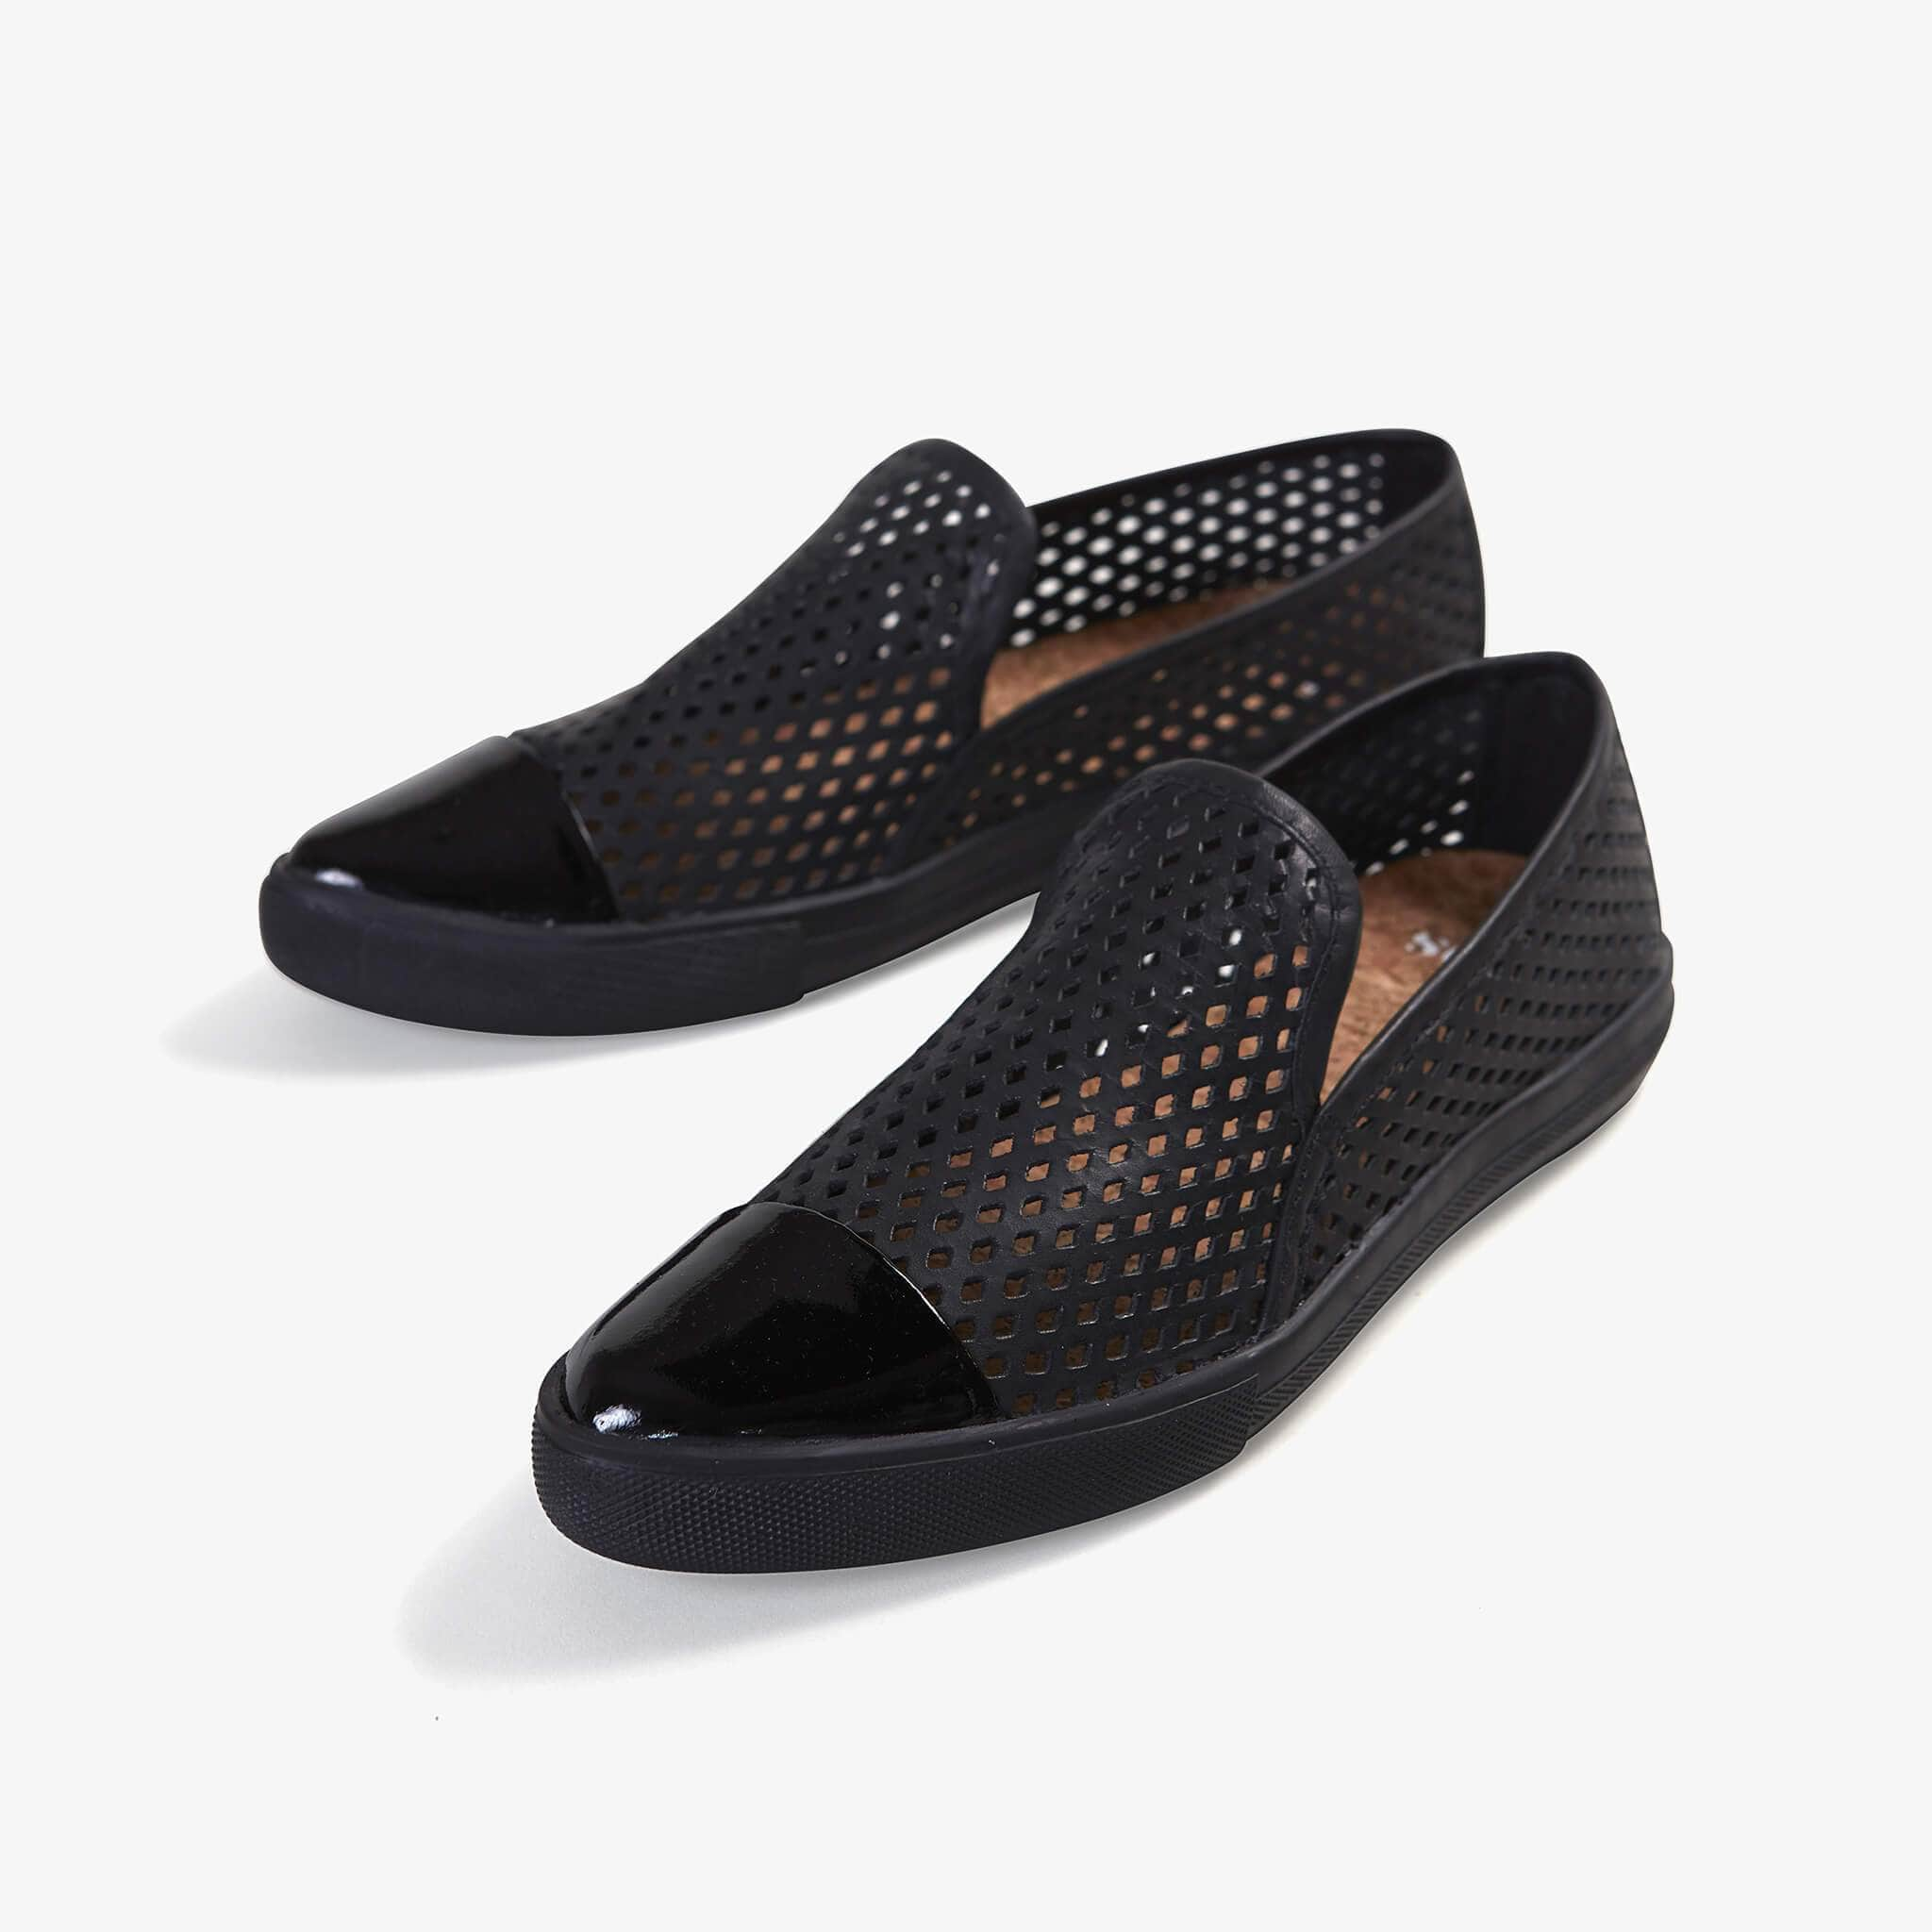 Jibs Slim Jet Black Royale + Onyx Slip On Sneaker Flat Pair